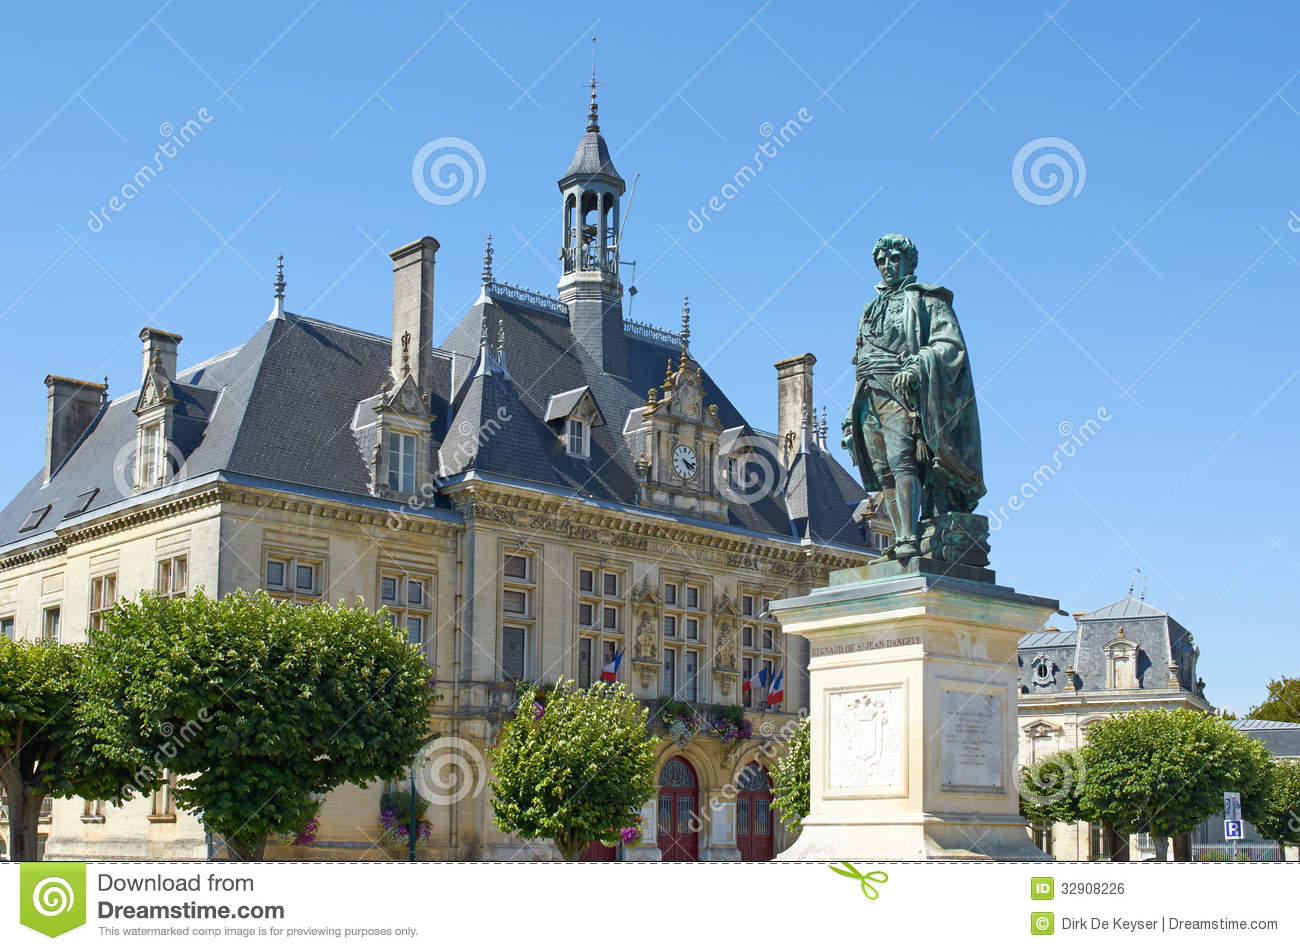 city hall of st jean d 39 angely with bronze statue of regnaud de st jean d 39 angely stock photo. Black Bedroom Furniture Sets. Home Design Ideas